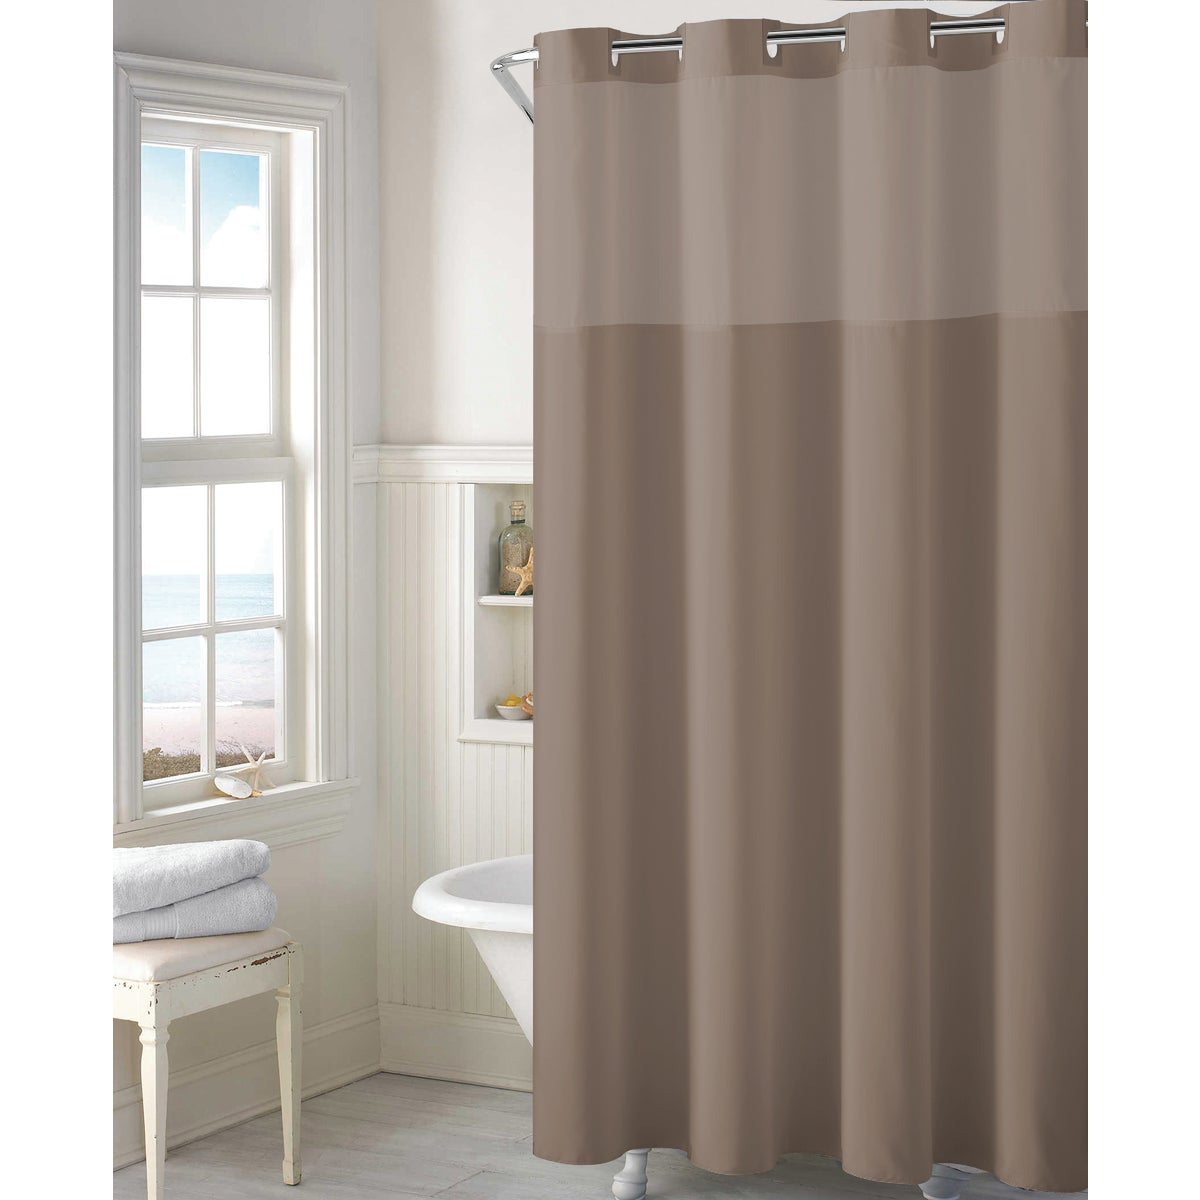 HOOKELSS SHOWER CURTAIN